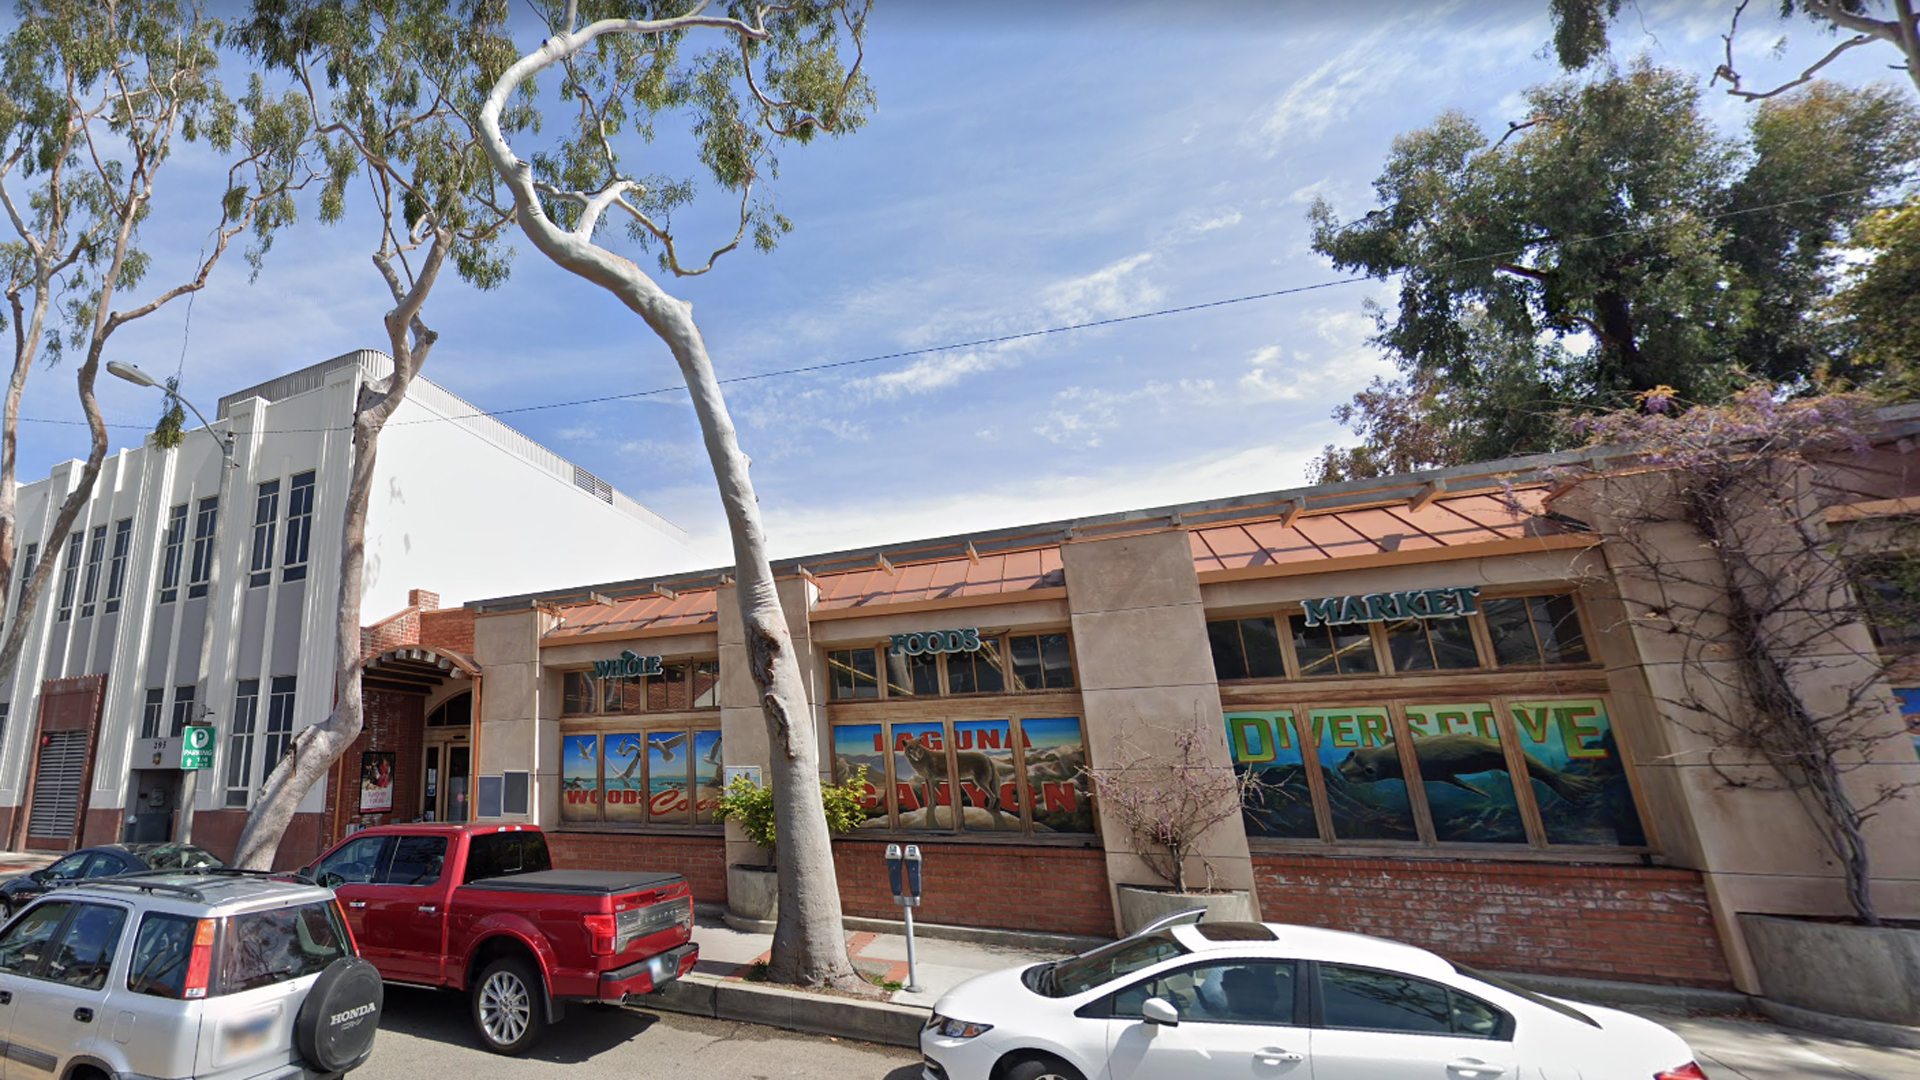 The only Whole Foods store in Laguna Beach appears in an image from Google Maps.